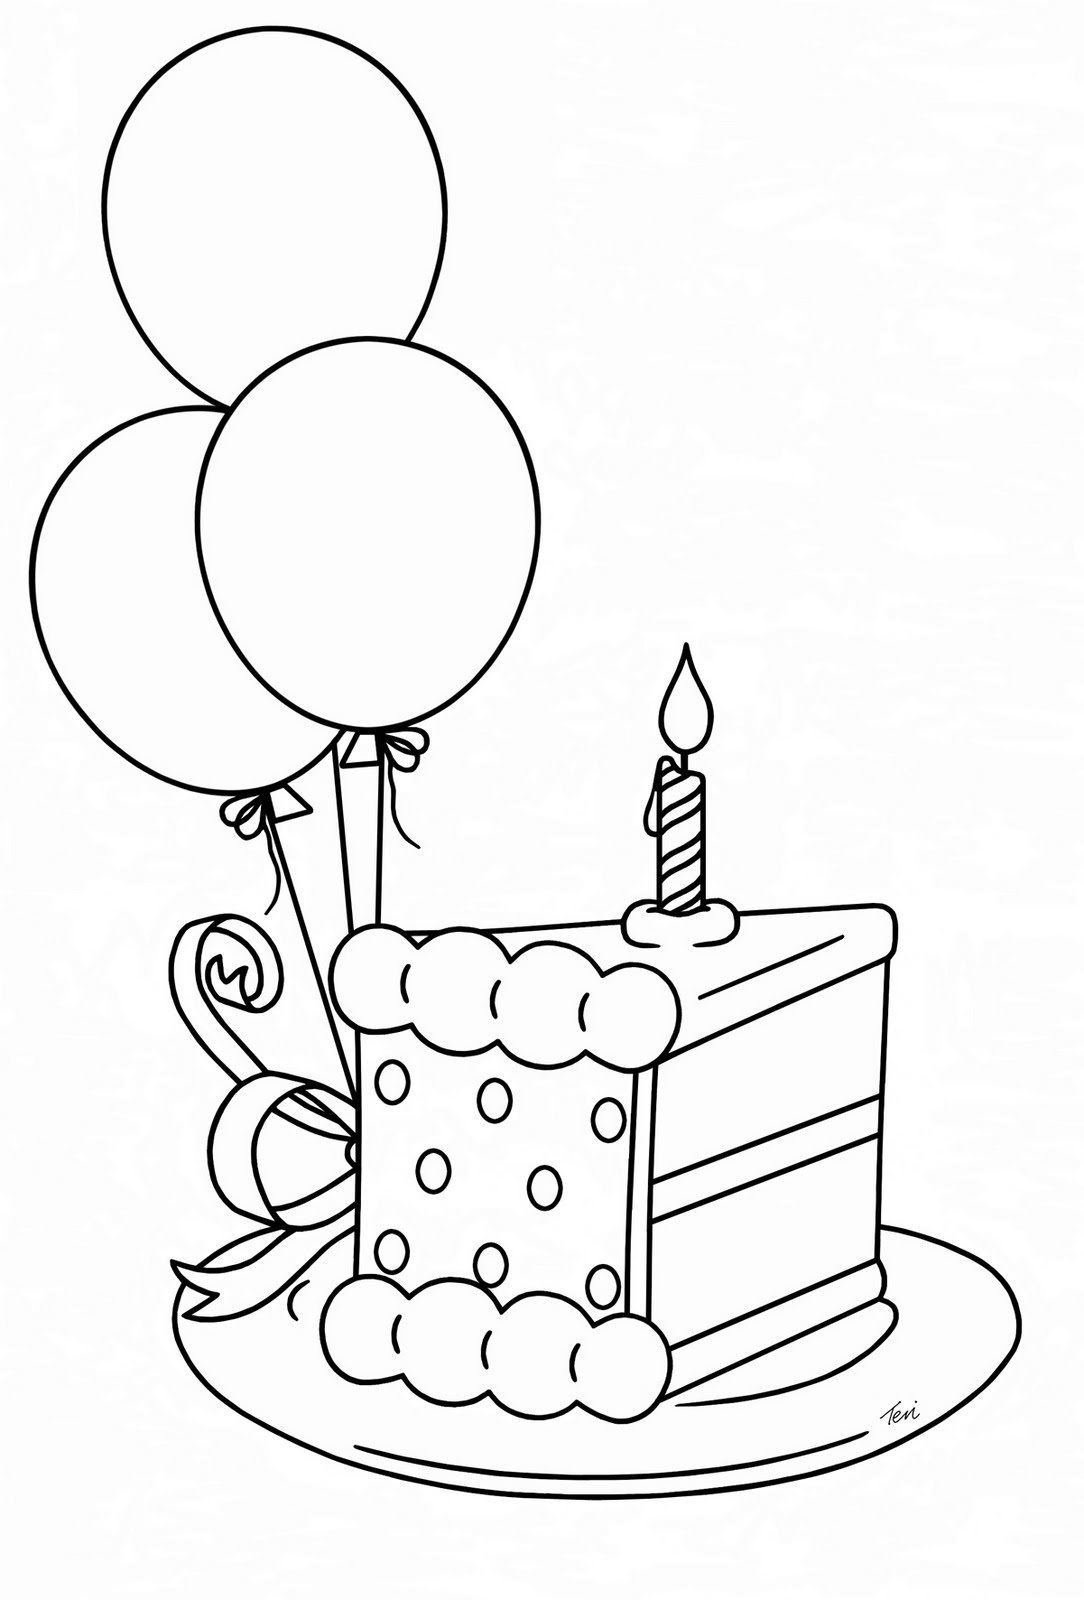 1084x1600 Birthday Cake Slice Drawing Images And Clip Art Birthday Cakes